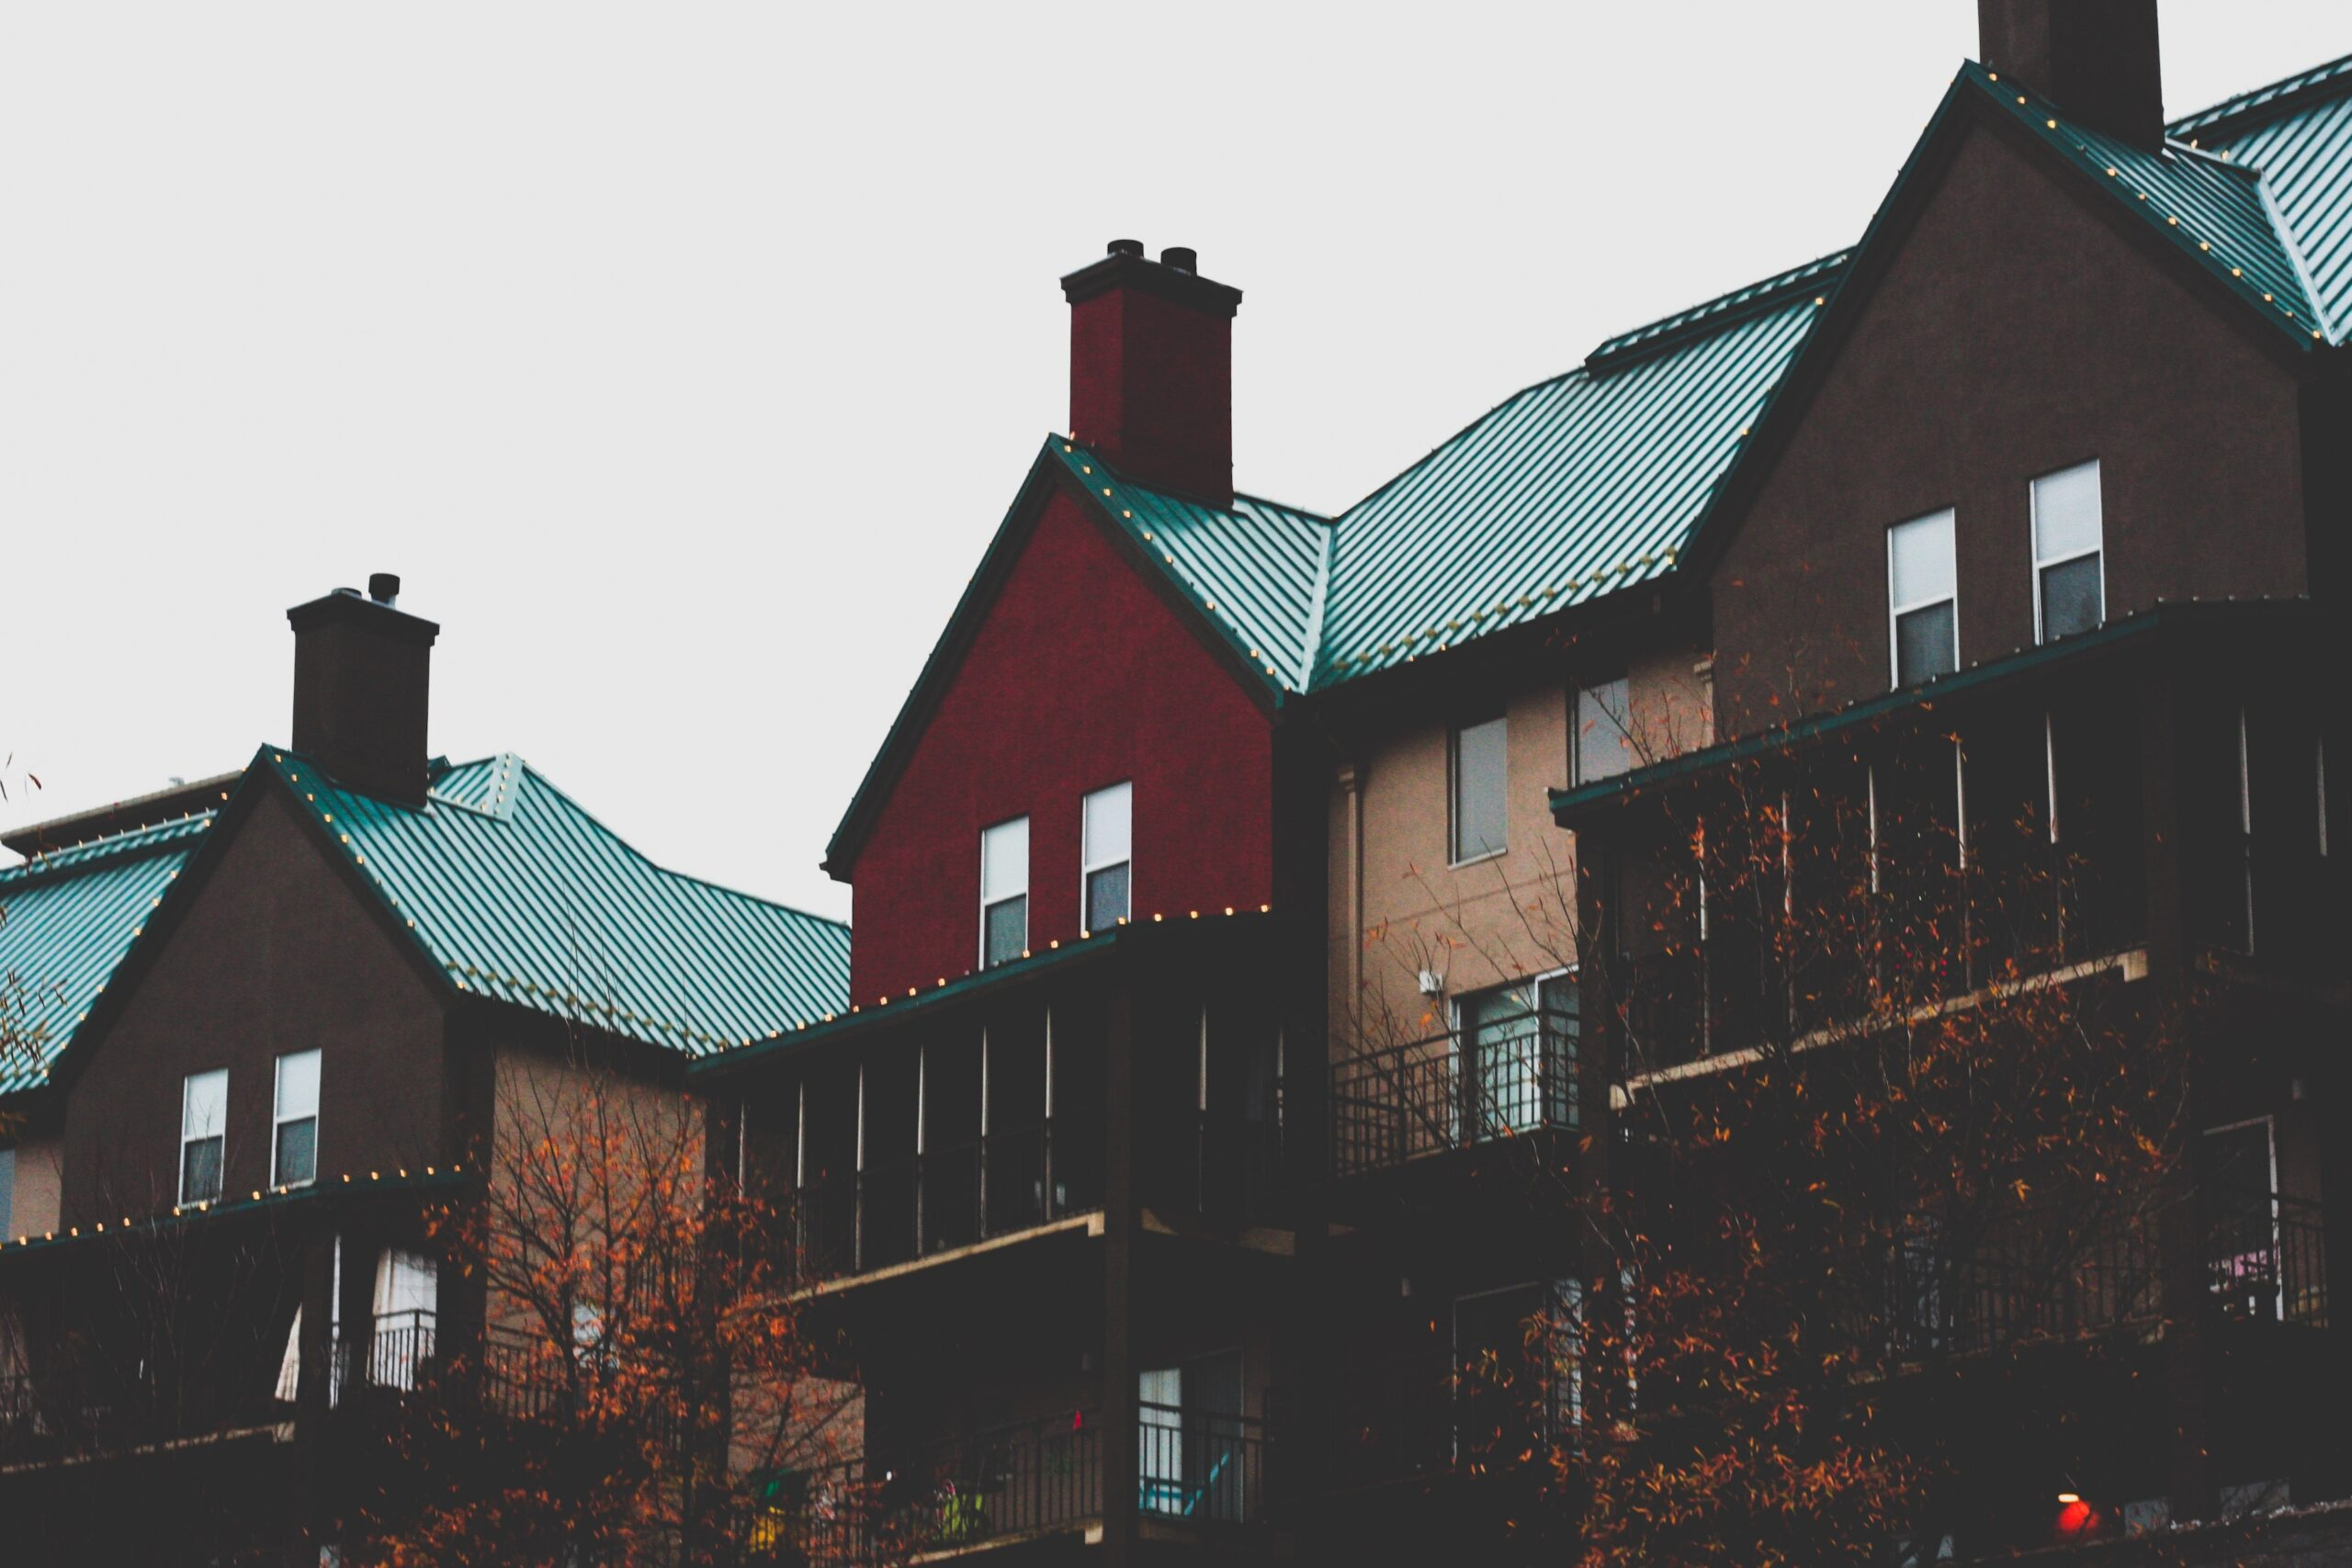 Homestay vs. Student Housing: Pros and Cons